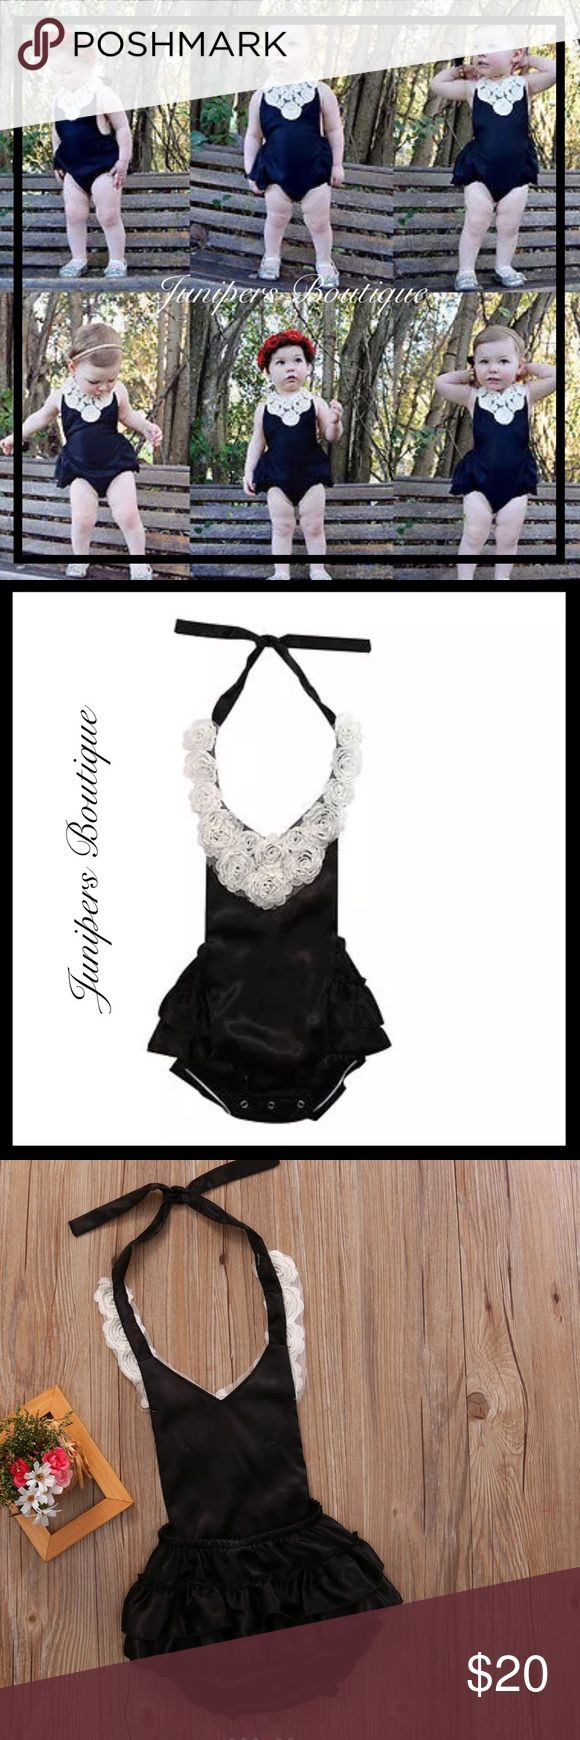 Boutique Baby Girl Black Satin Romper Beautiful baby girl black satin halter style Romper with white Rosette flowers to top and black satin ruffles to back side. Snaps at bottom. One Pieces Bodysuits